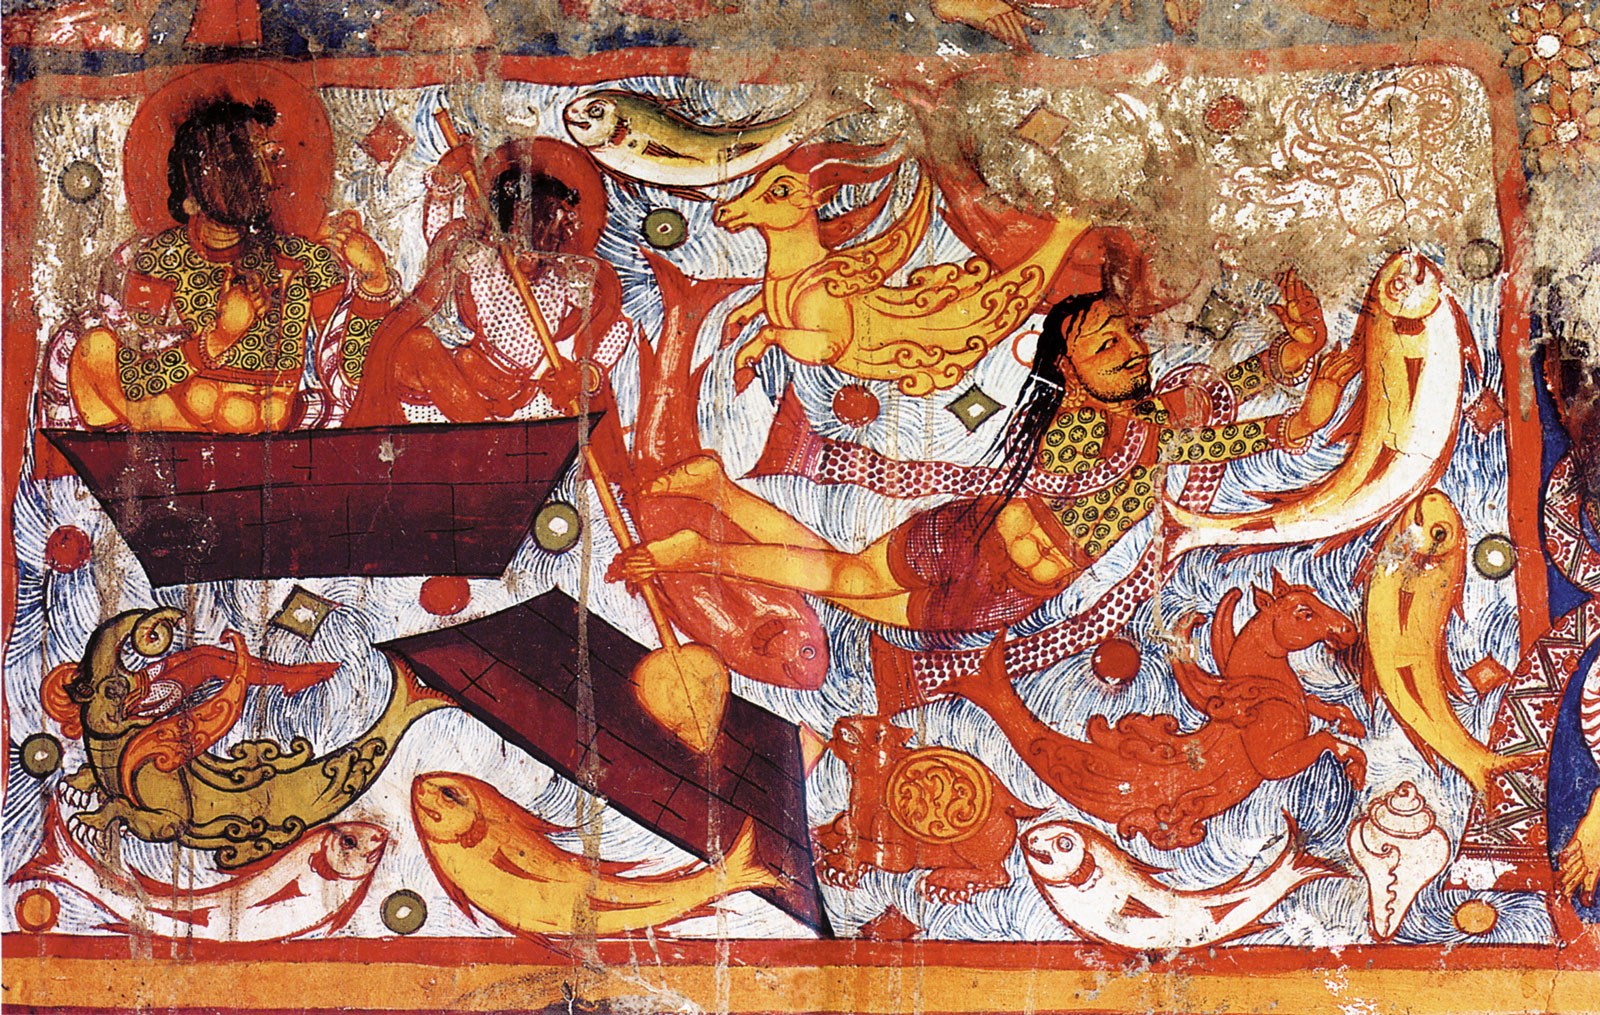 Avalokiteshvara painting of a fisherman in distress during a storm, in the northeast stupa of the Mother Monastery in Tholing, Kashmiri origin, possibly of the foundation period